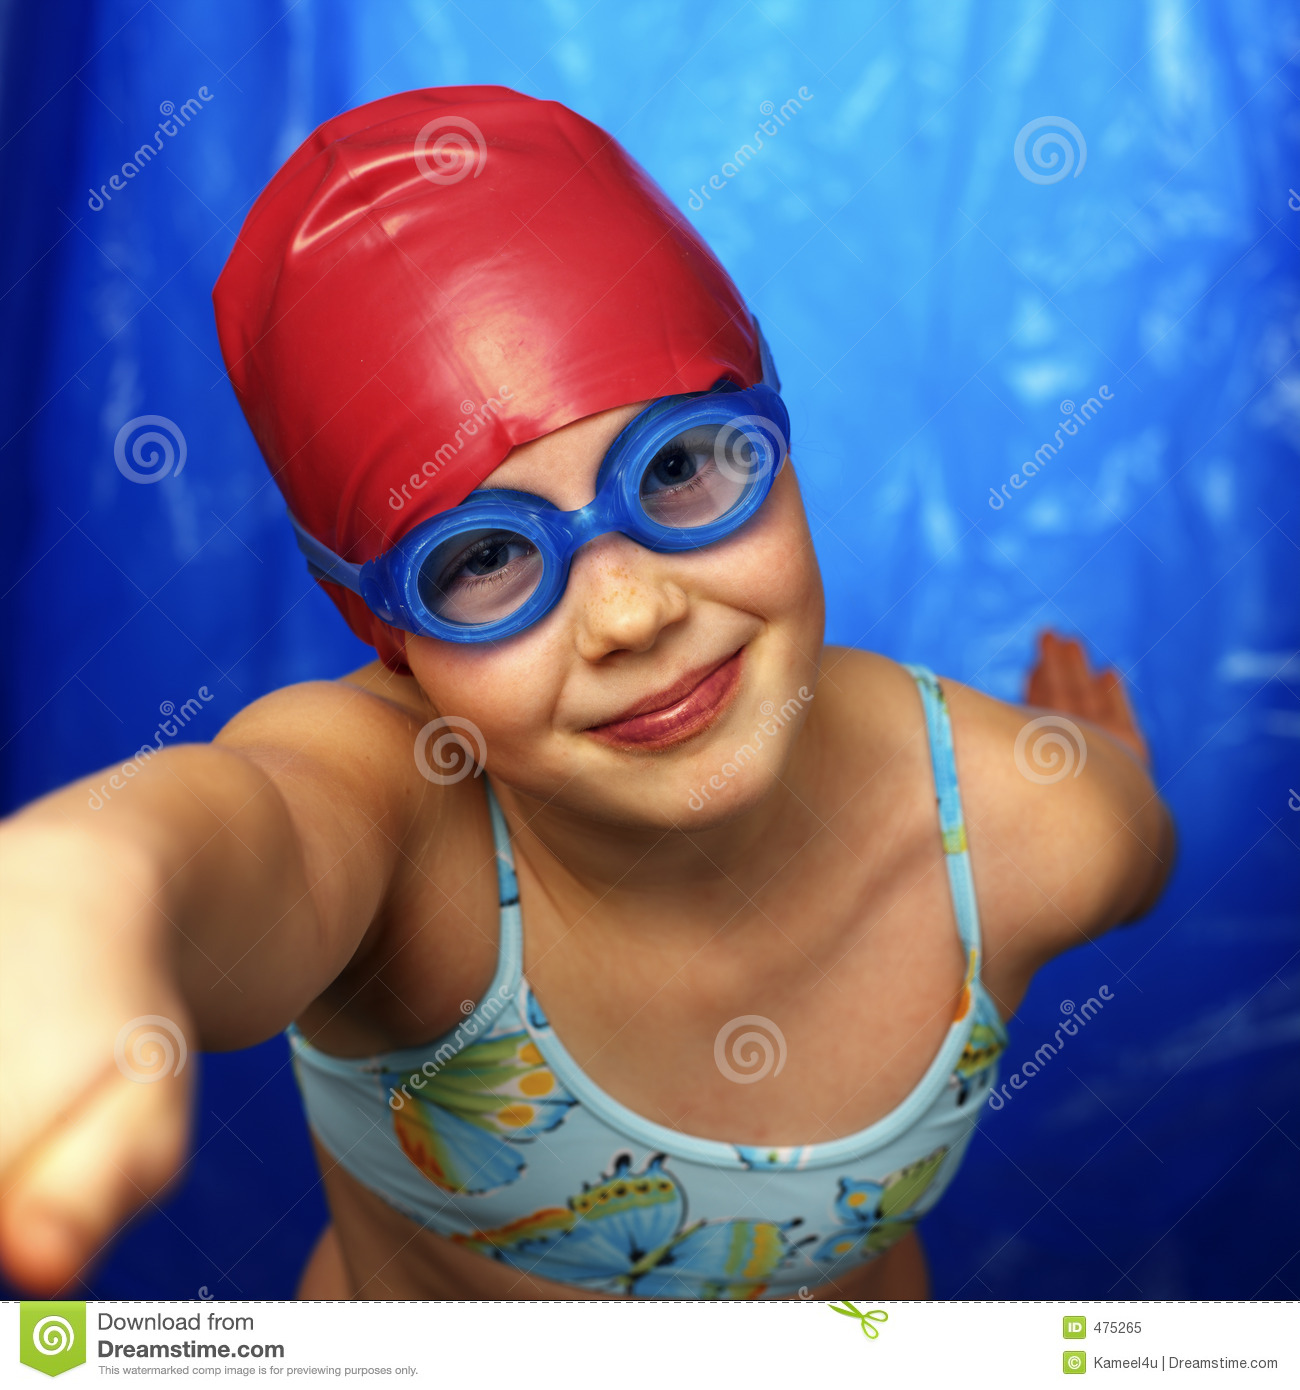 Girl learning how to swim